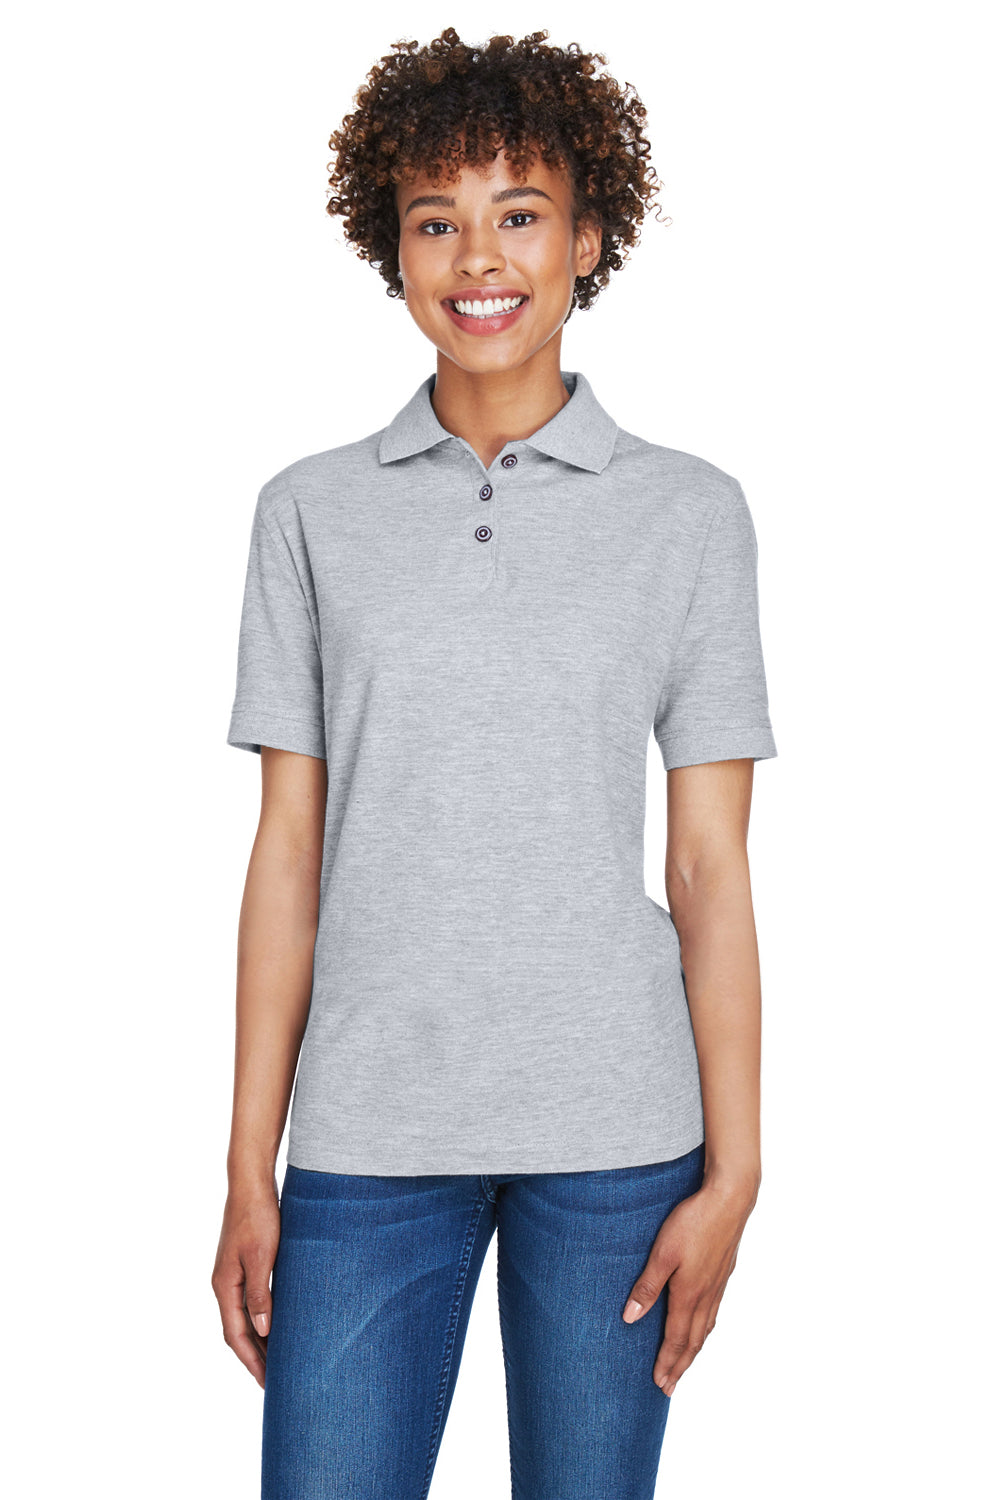 UltraClub 8541 Womens Whisper Short Sleeve Polo Shirt Heather Grey Front